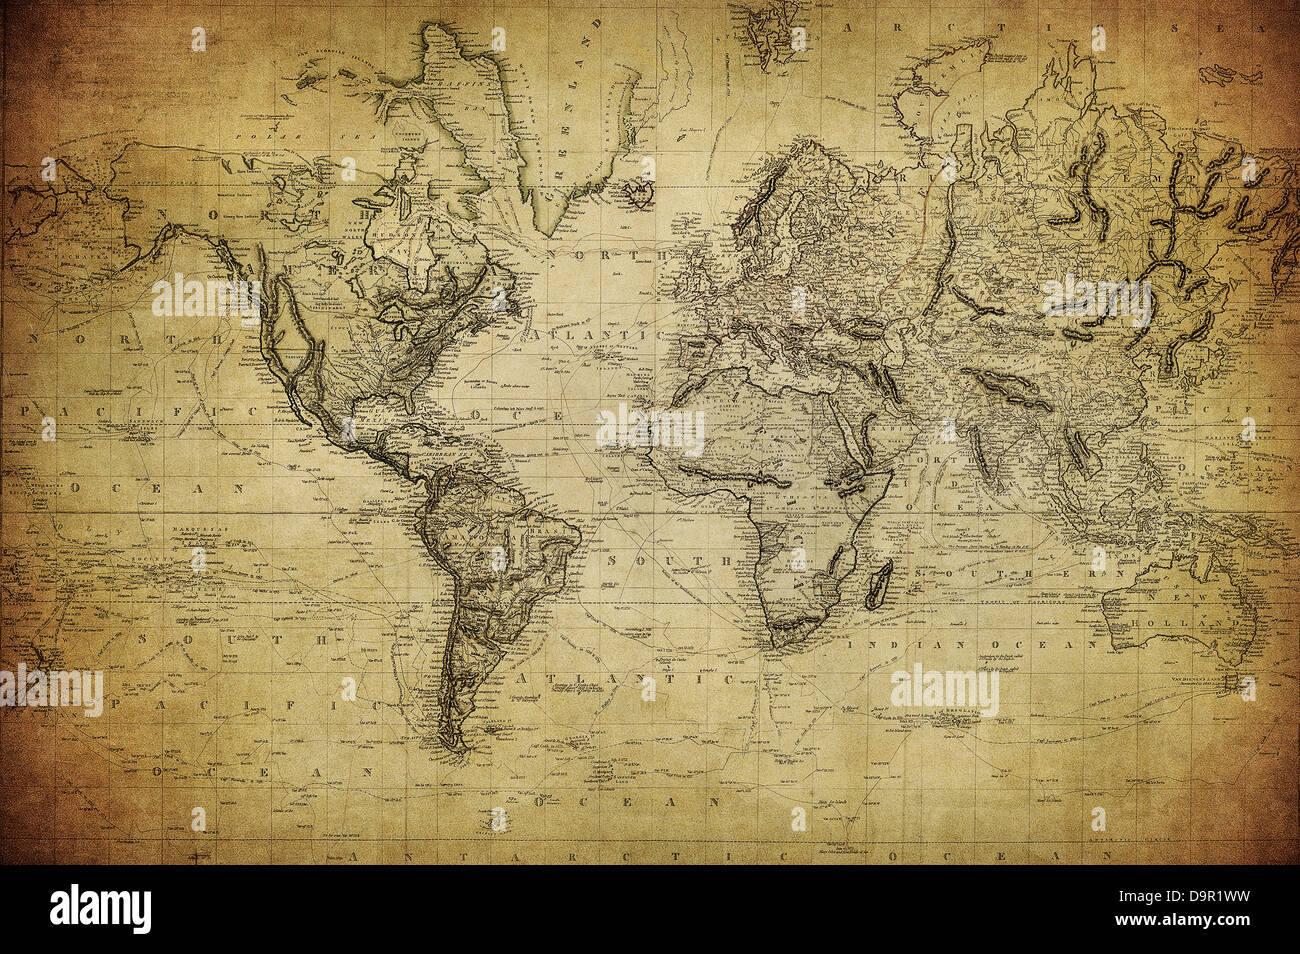 vintage map of the world 1814 - Stock Image